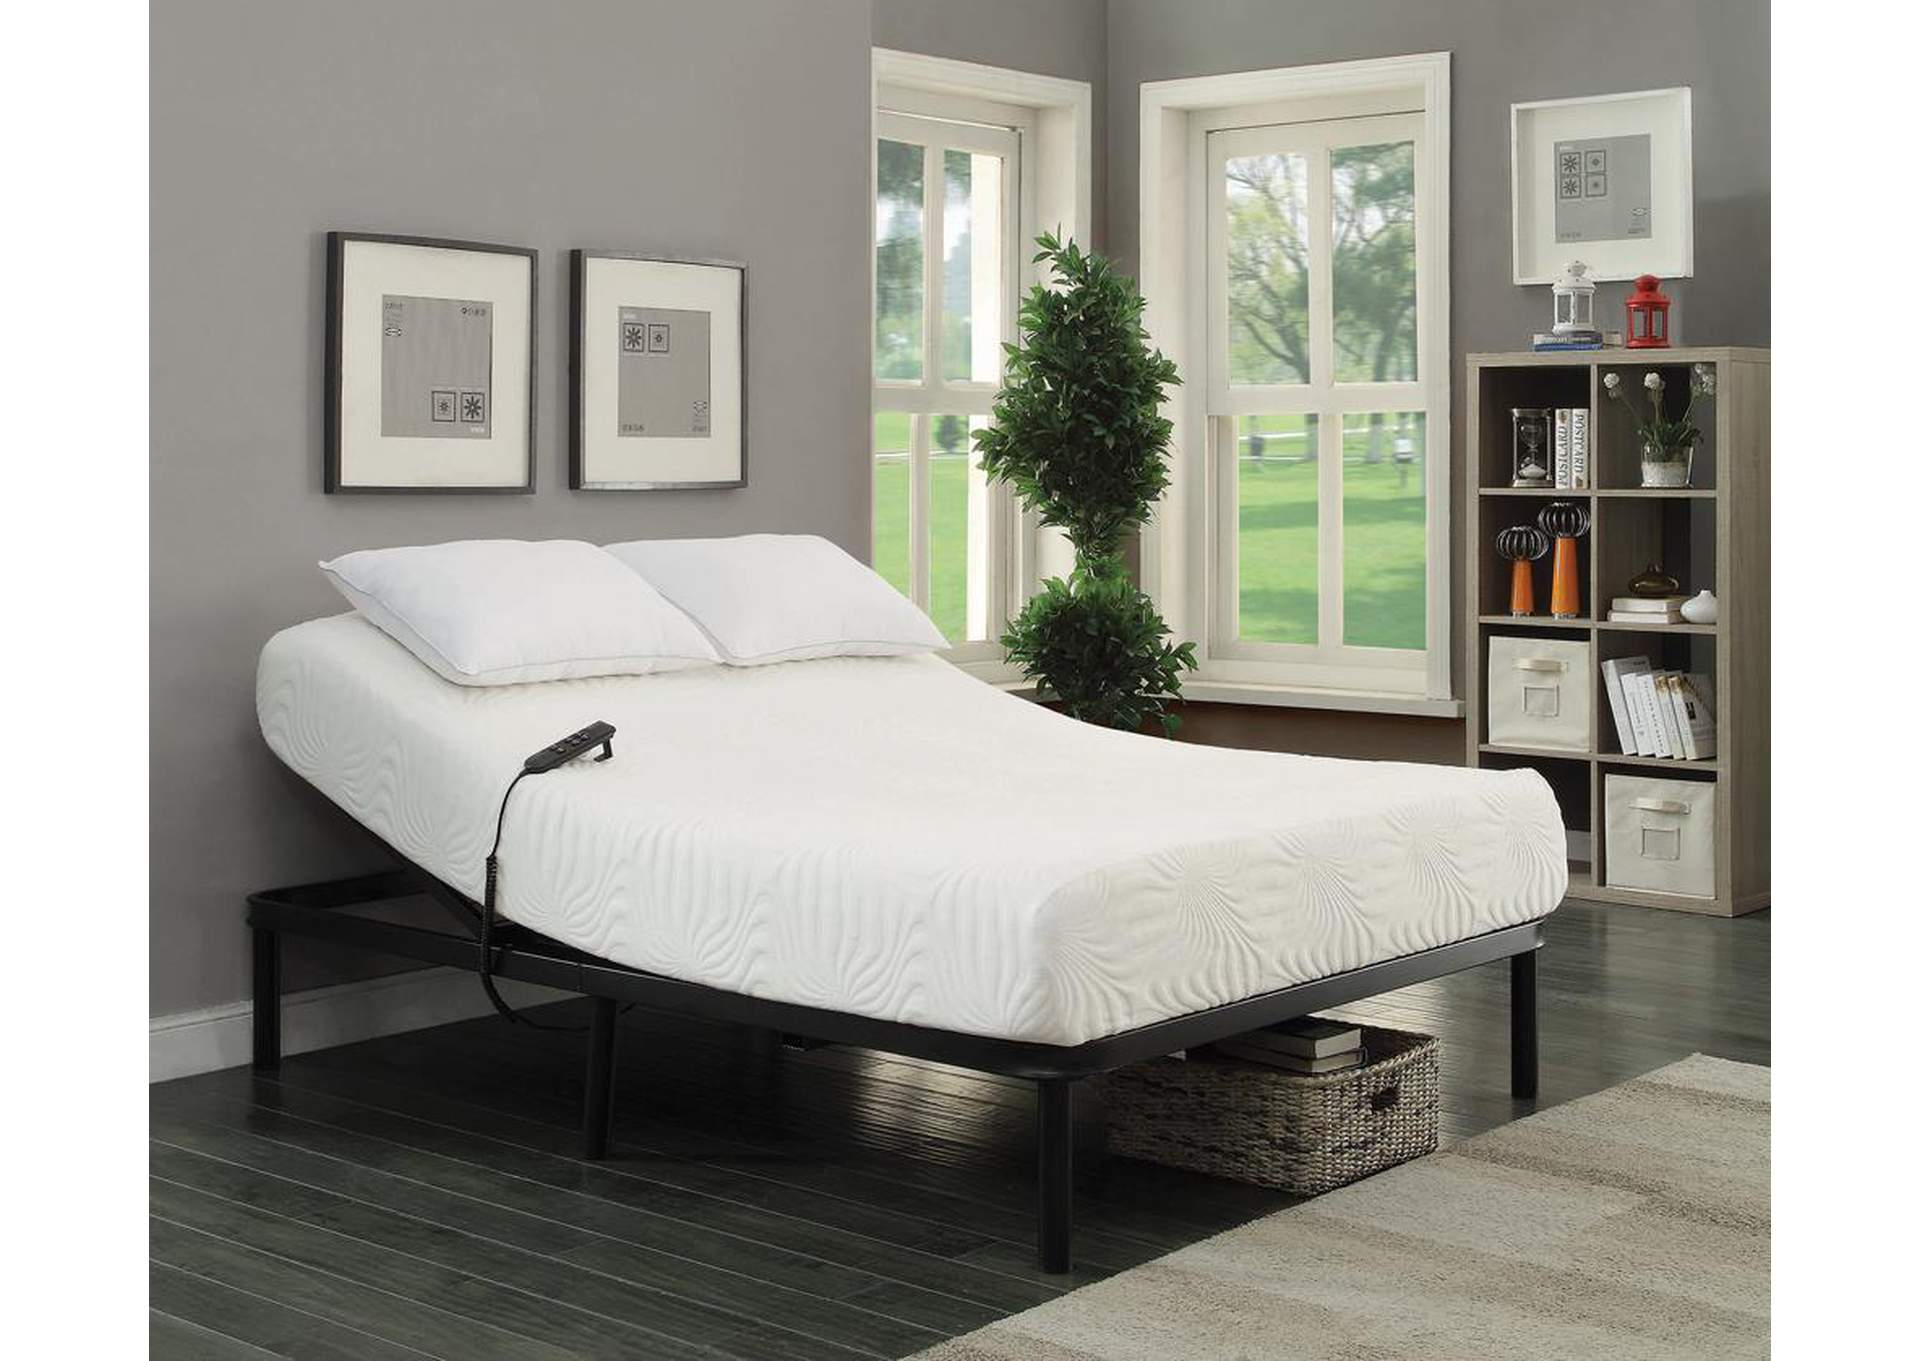 Stanhope Black Adjustable King Bed,Coaster Furniture